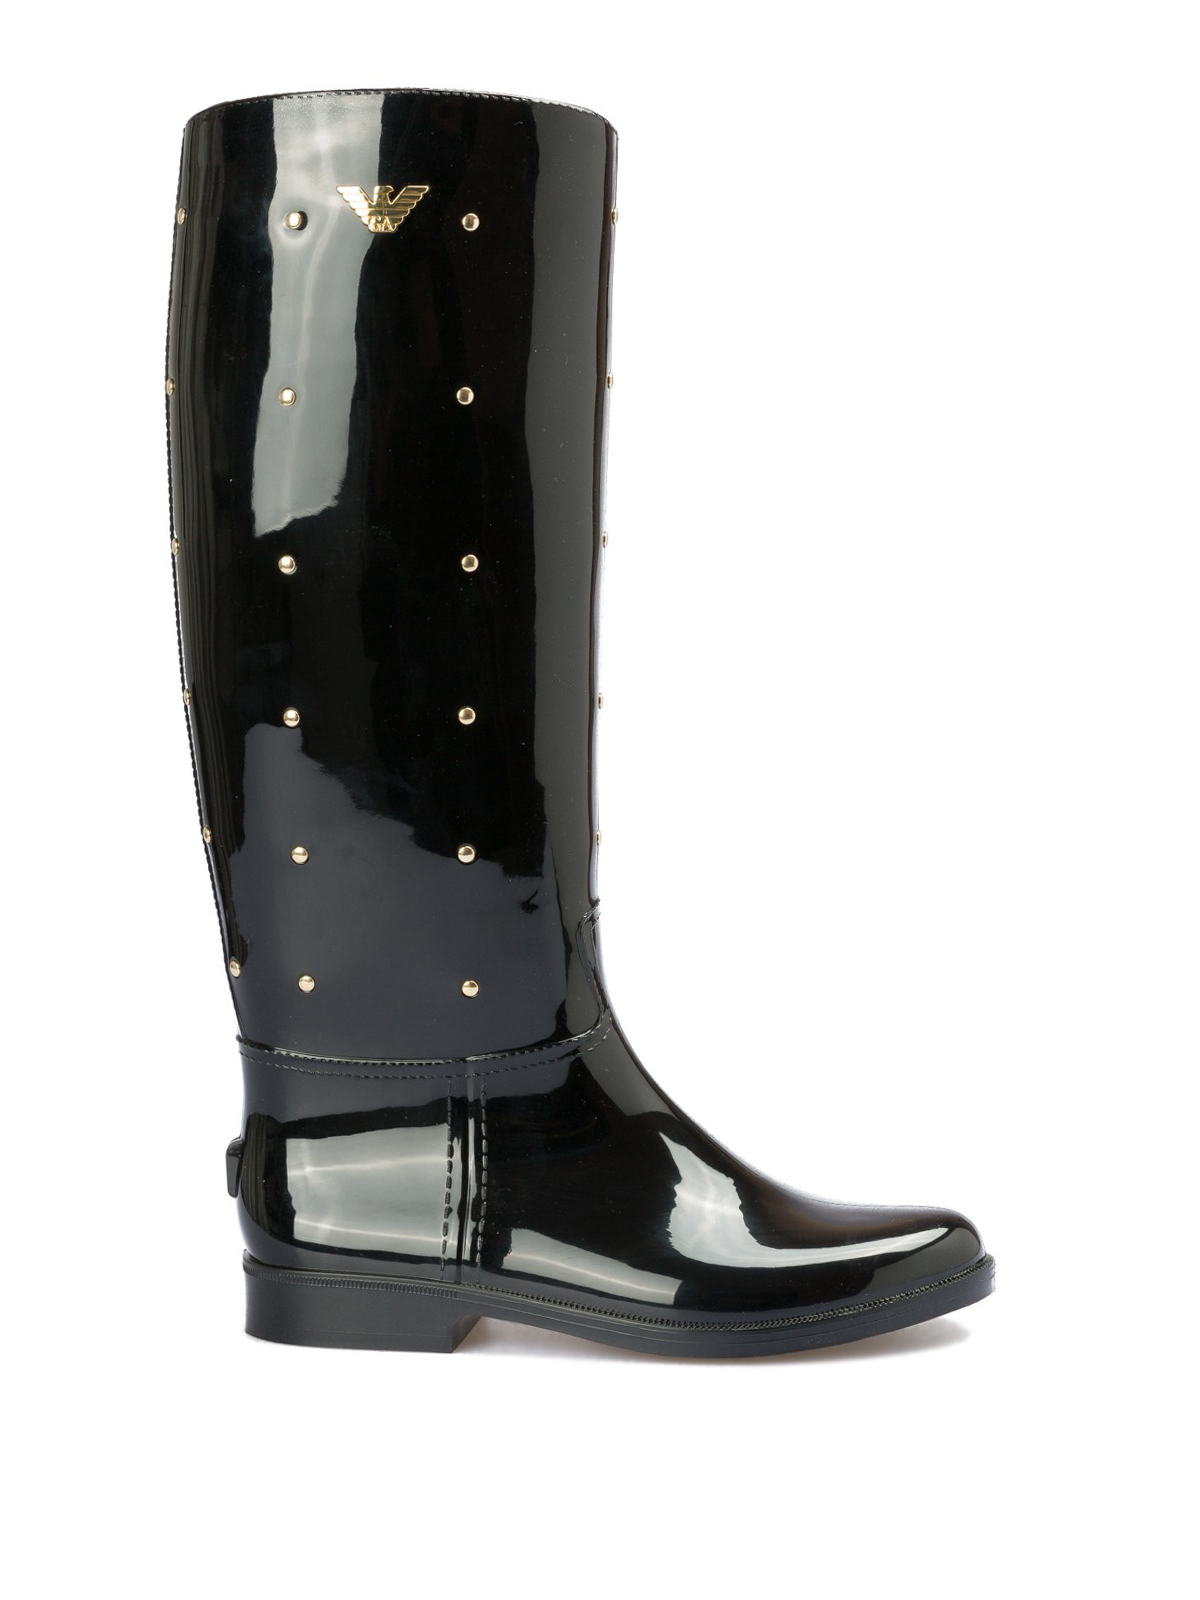 ba61c74f Emporio Armani - Rubber rain boots with golden studs and logo ...